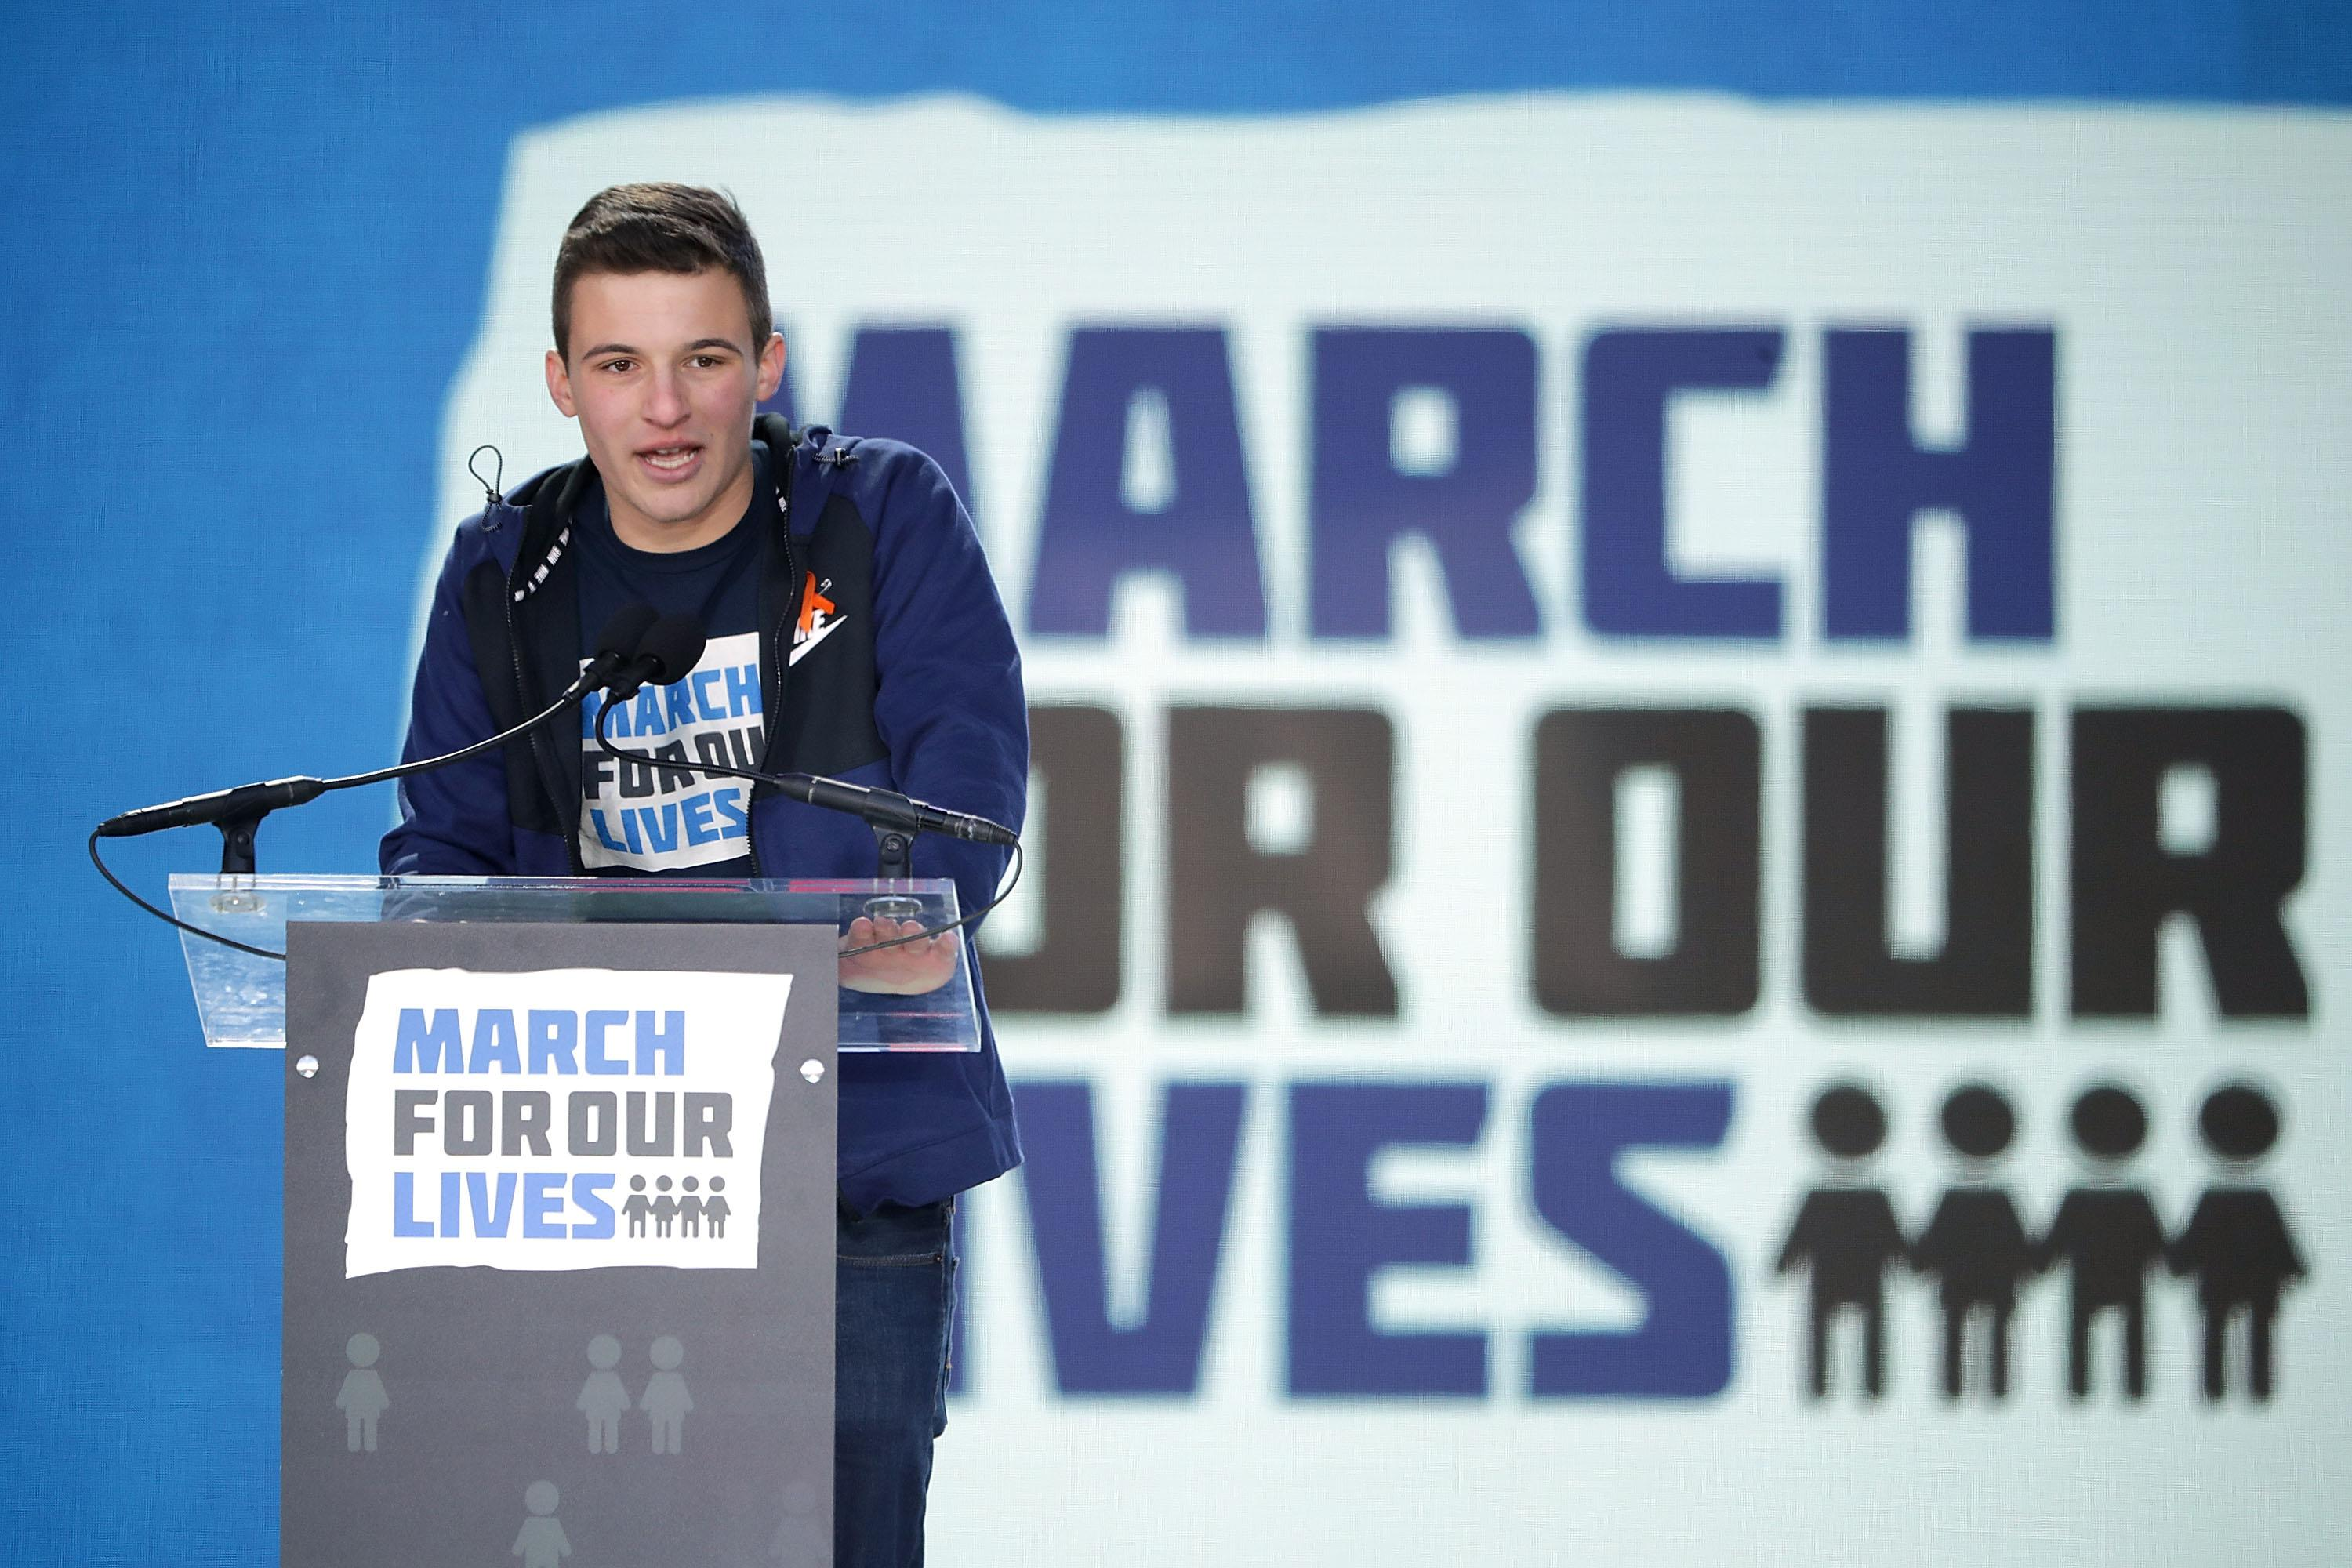 Marjory Stoneman Douglas High School Student Cameron Kasky addresses the March for Our Lives rally on March 24, 2018 in Washington, D.C.